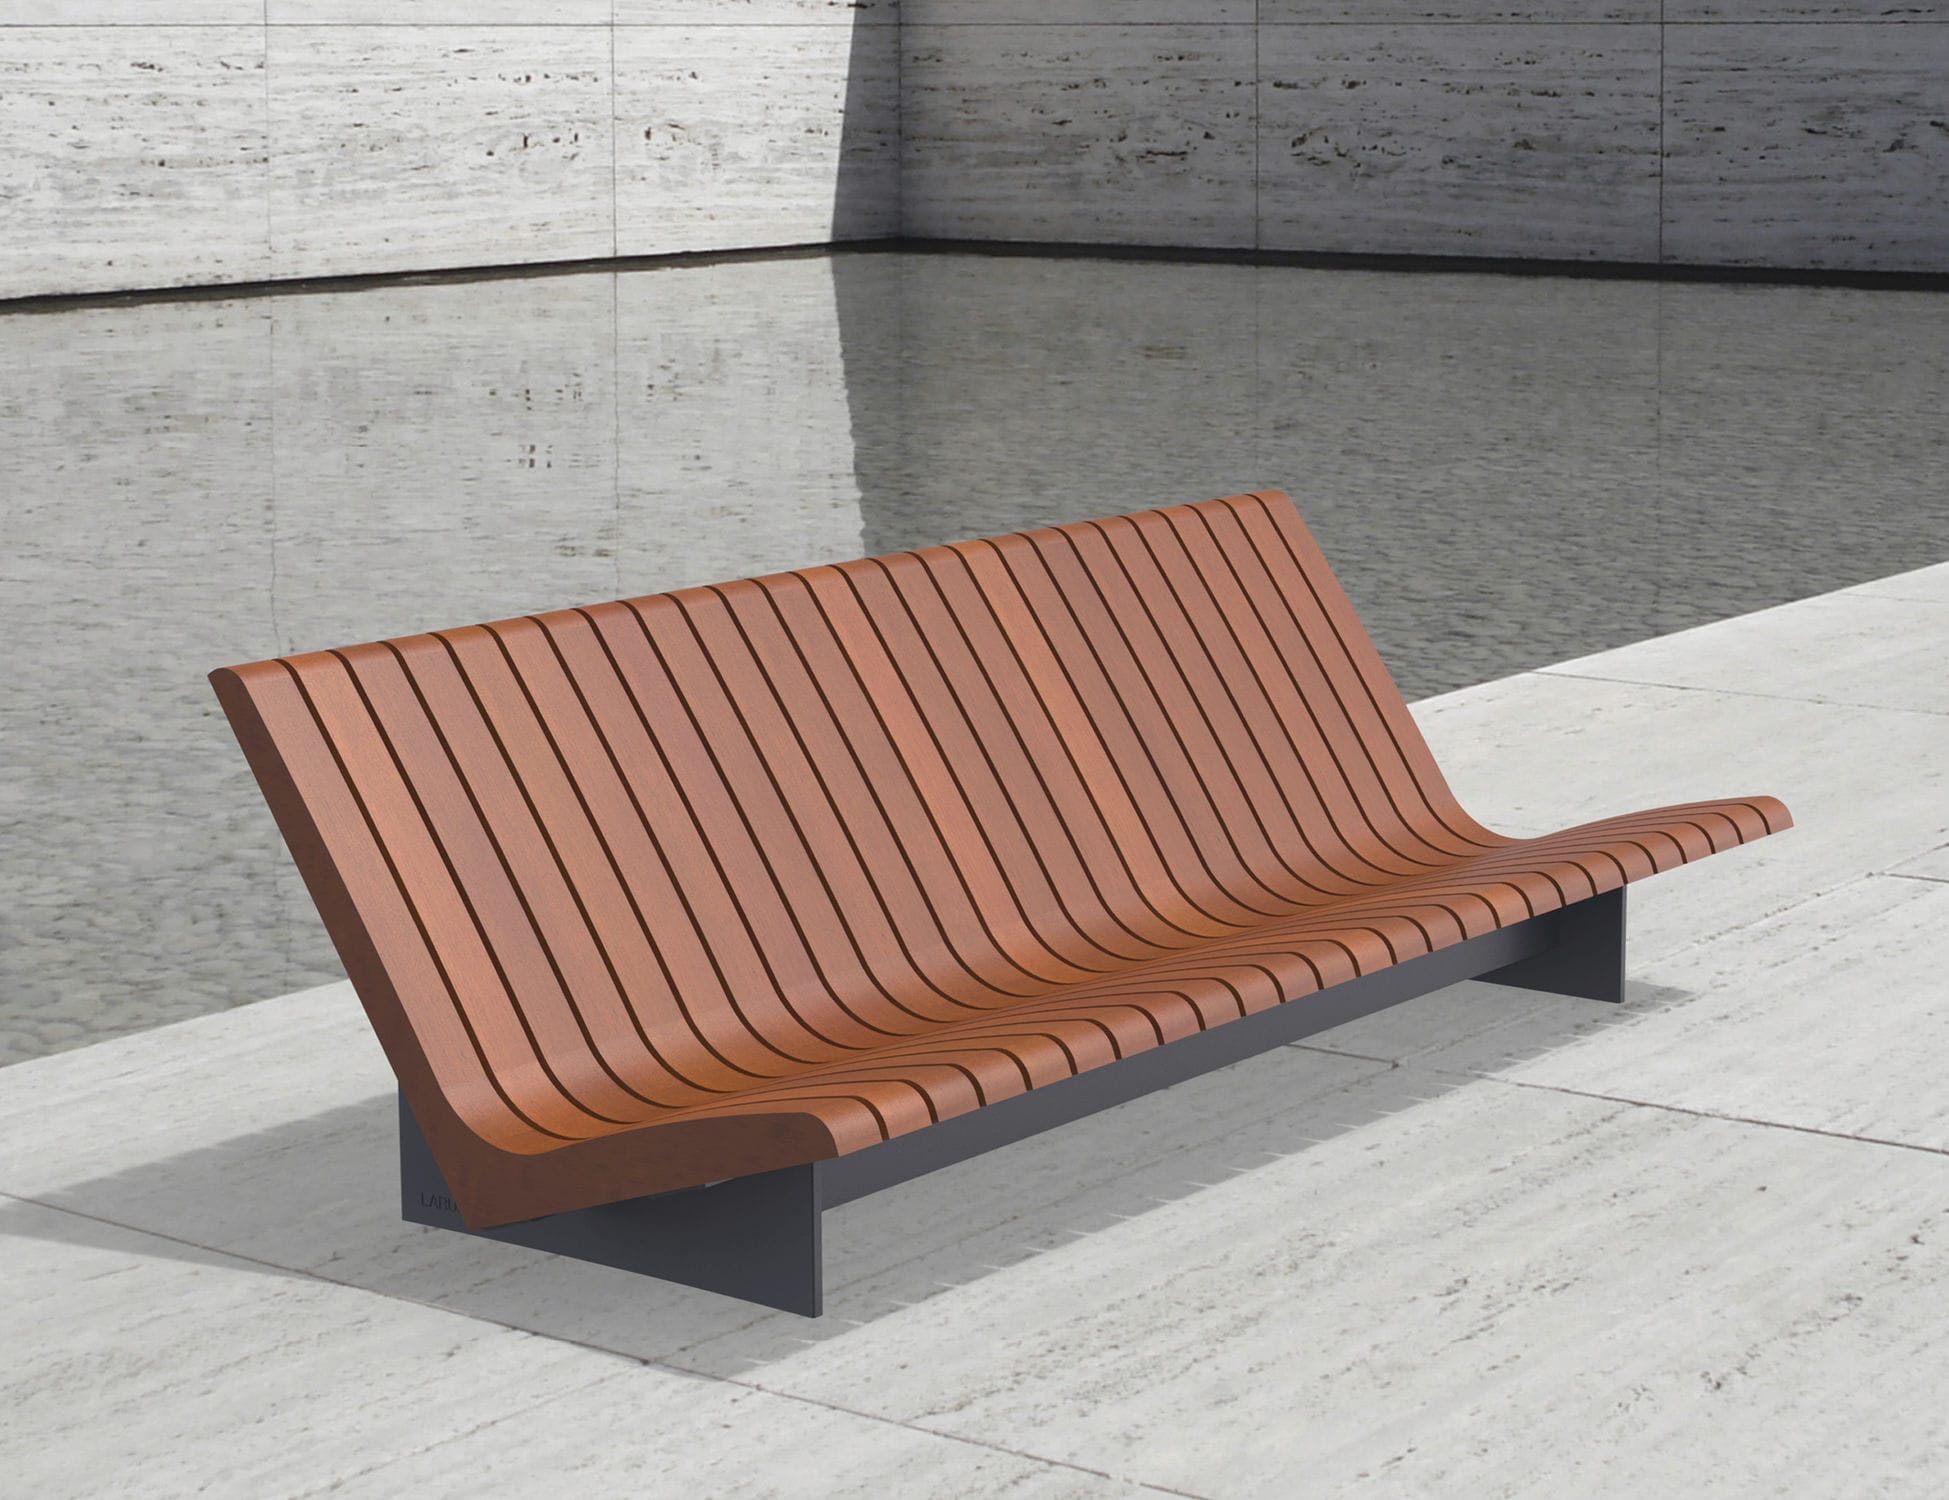 Contemporary Garden Bench Aria Larus Design Wooden With Backrest Fsc Certified